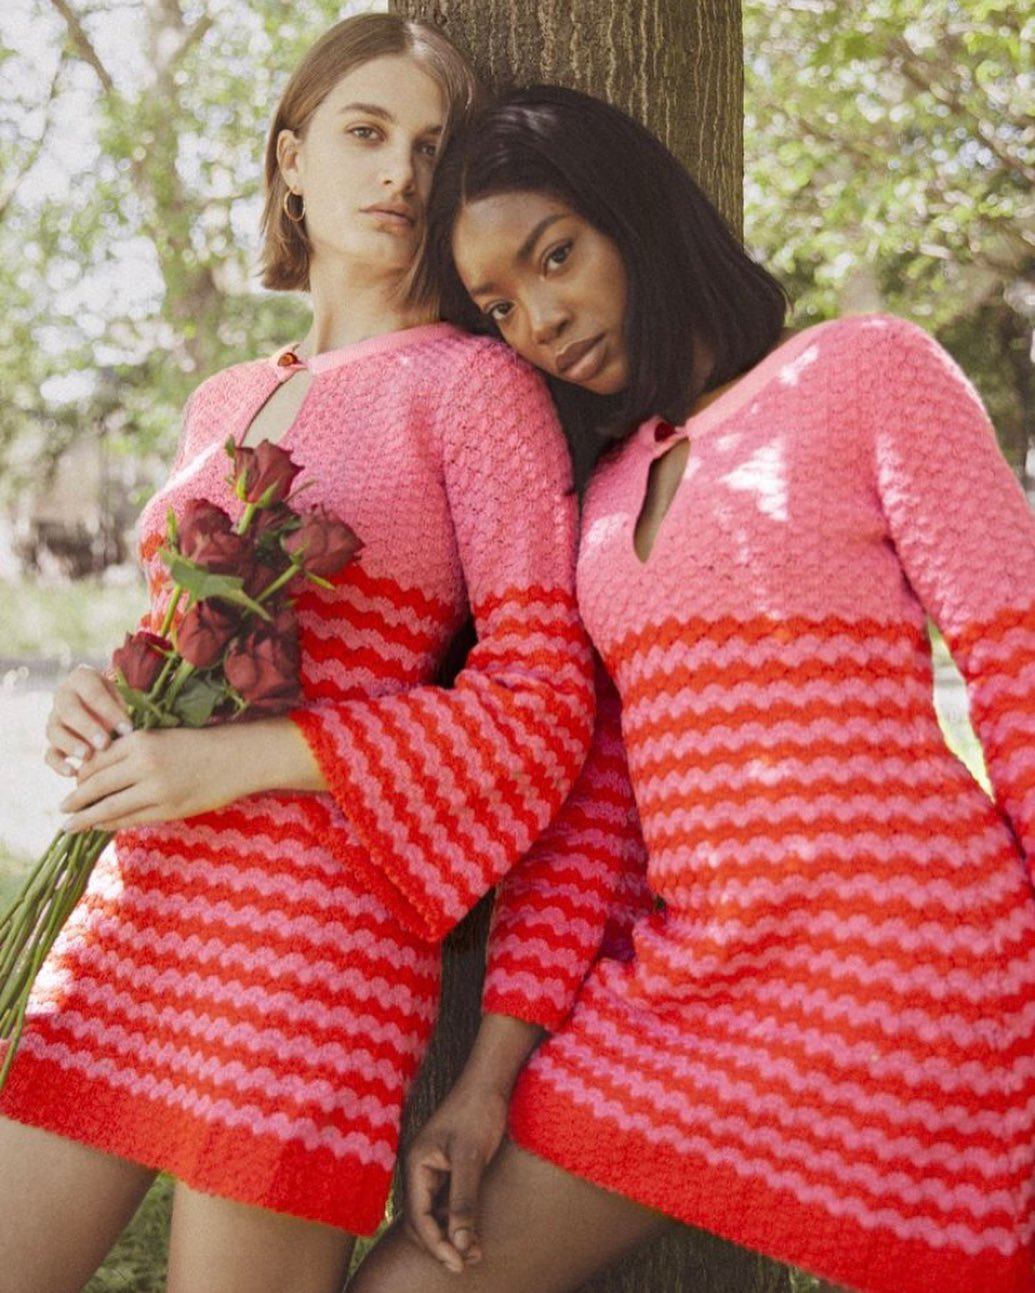 13 vintage and handmade crochet pieces that give us instant summer vibes